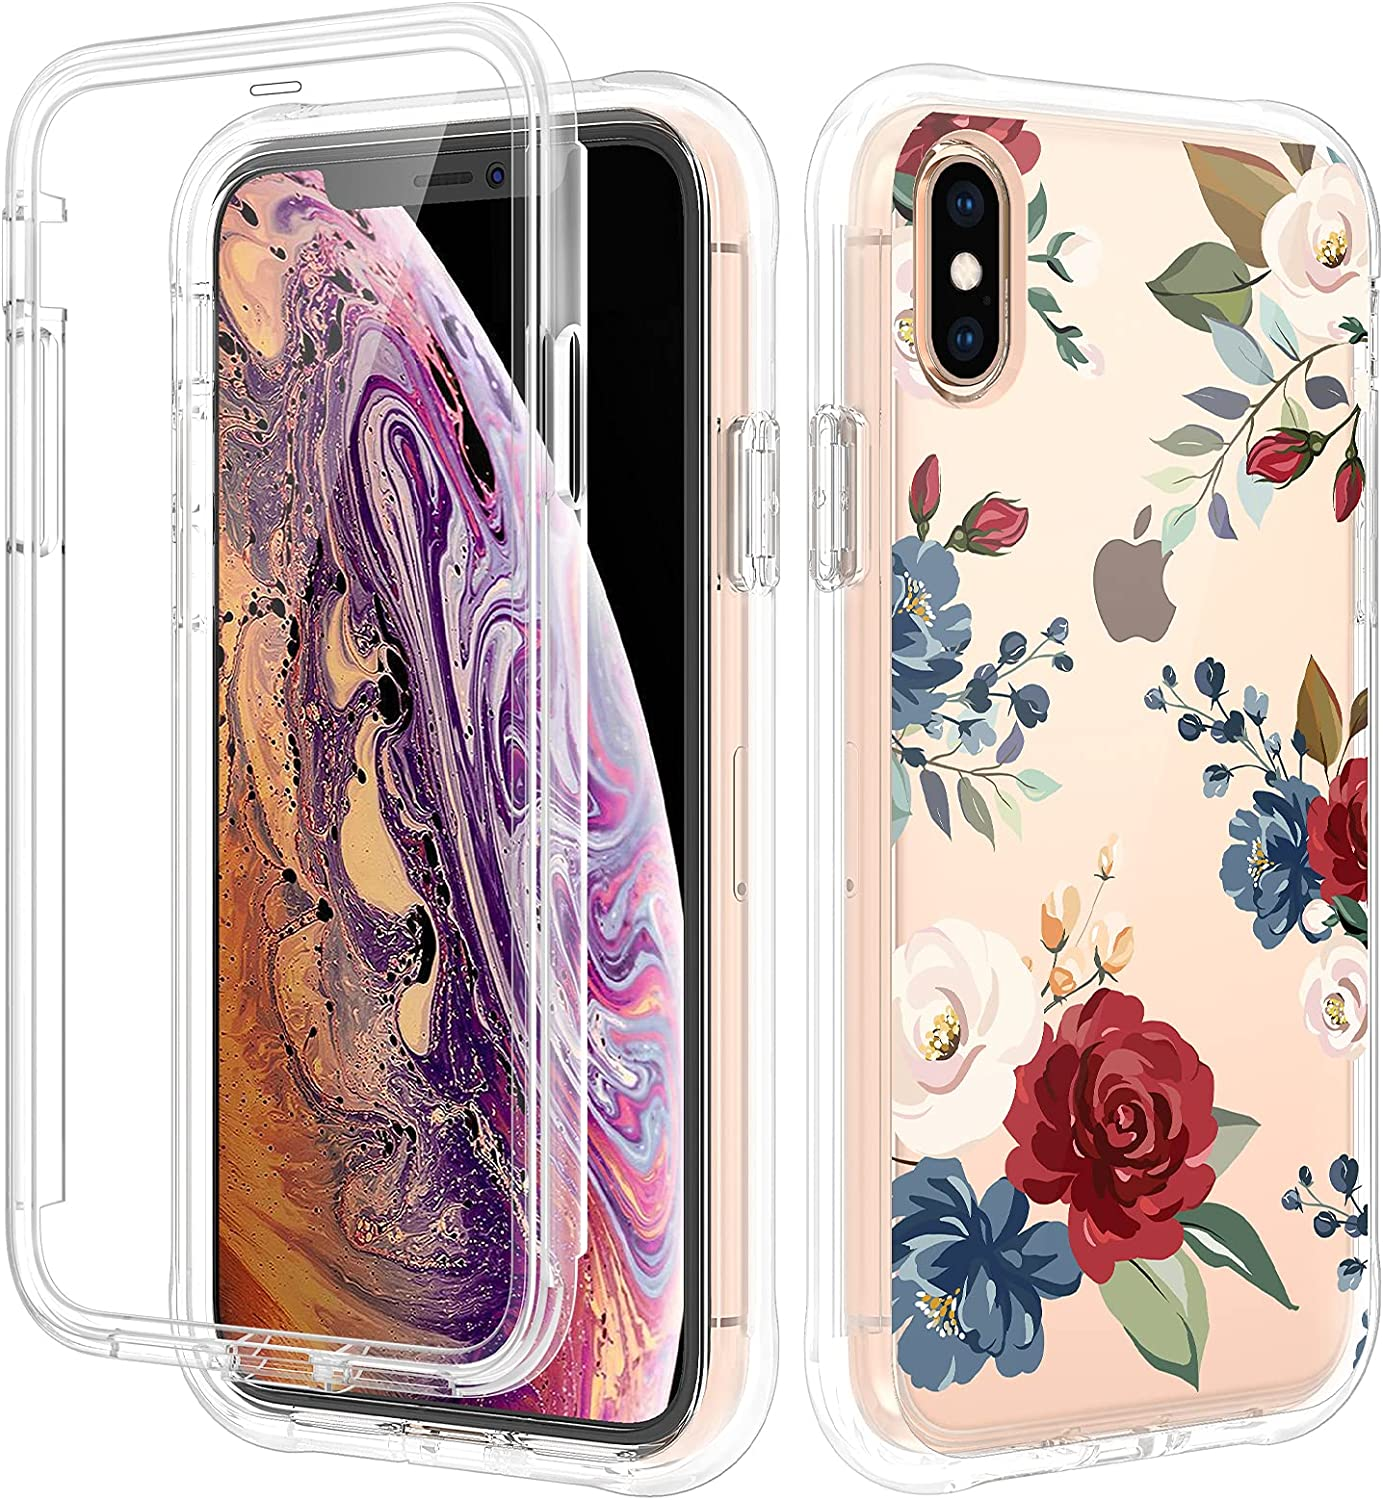 Caka Case for iPhone X, iPhone Xs Case with Screen Protector for Women Girls Full Body Protective Case Clear with Design Floral Flower Shockproof Case for iPhone X Xs 5.8 inches (Rose)